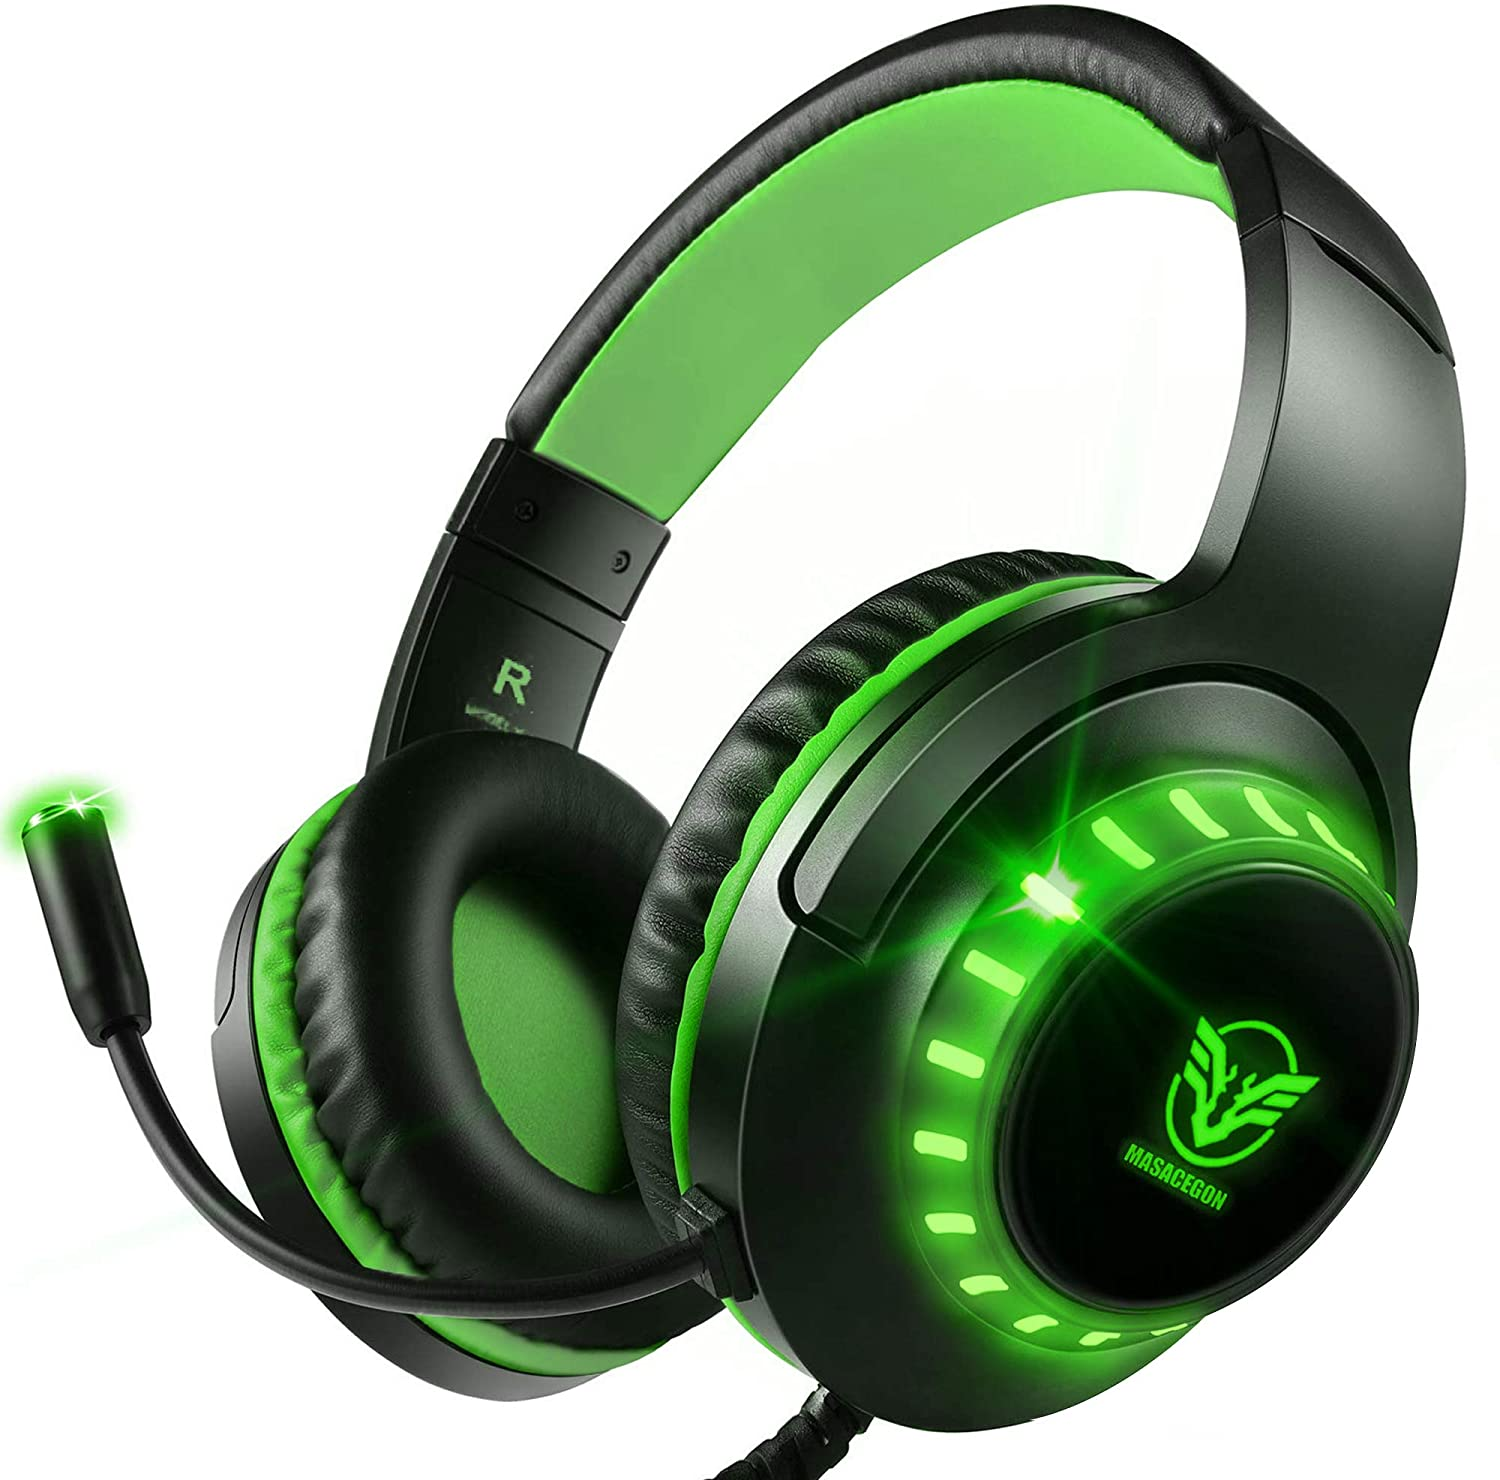 71ZJvVK84OL. AC SL1500 Best Headset Microphone for Streaming - Top 9 Products in [year]